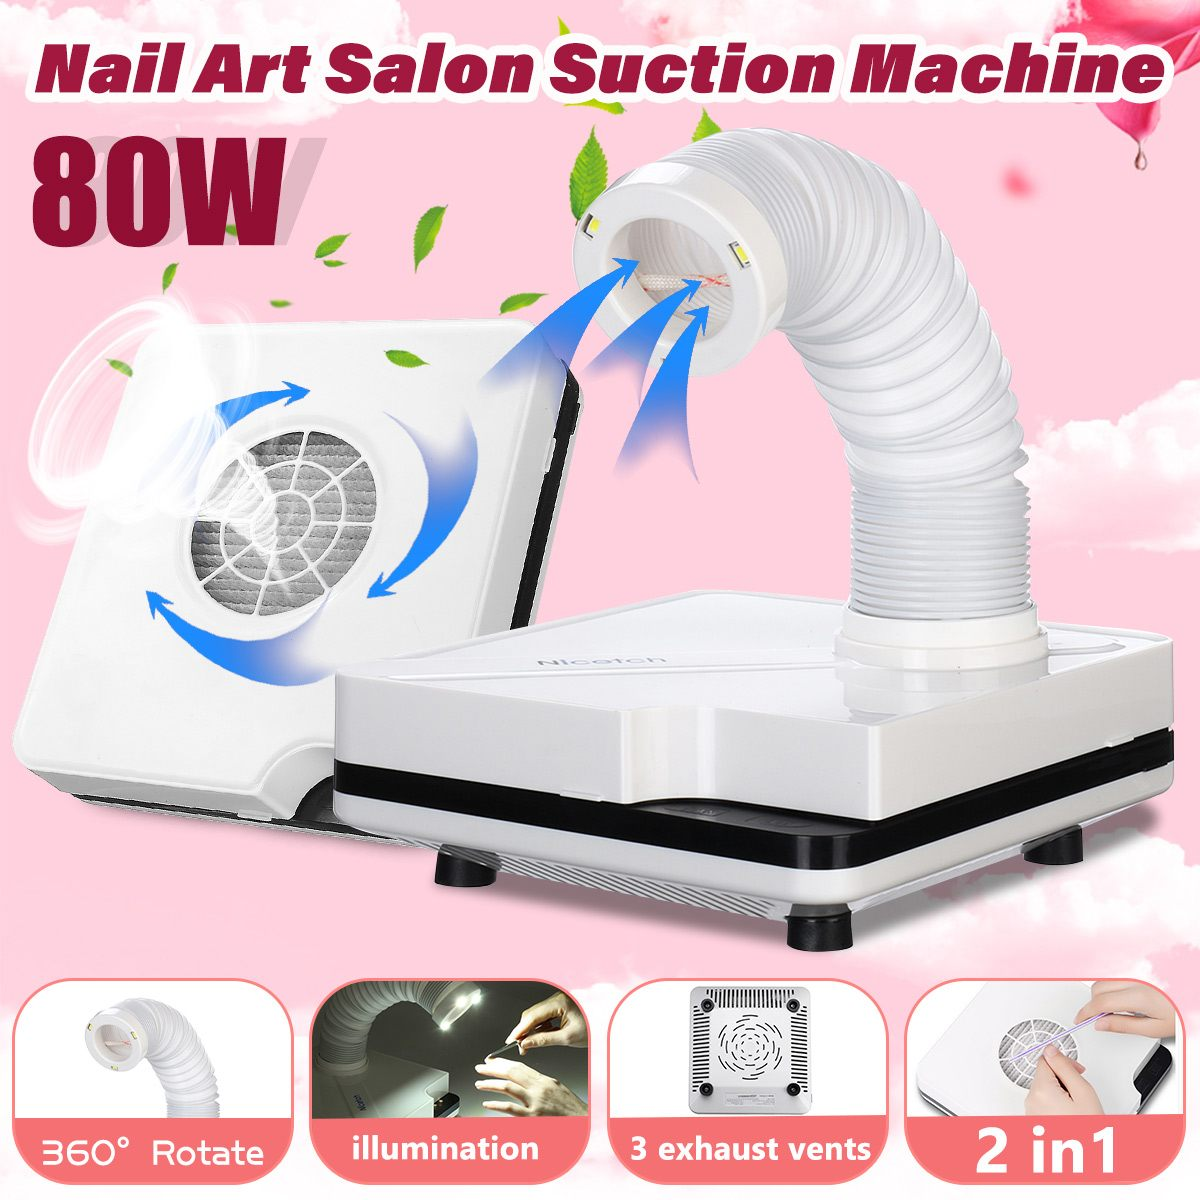 80W Nail Dust Collector Manicure Set Machine Nail Polish Cleaner Manicure Tools Vacuum Cleaner kit For Nail Art Dust Cleaner80W Nail Dust Collector Manicure Set Machine Nail Polish Cleaner Manicure Tools Vacuum Cleaner kit For Nail Art Dust Cleaner